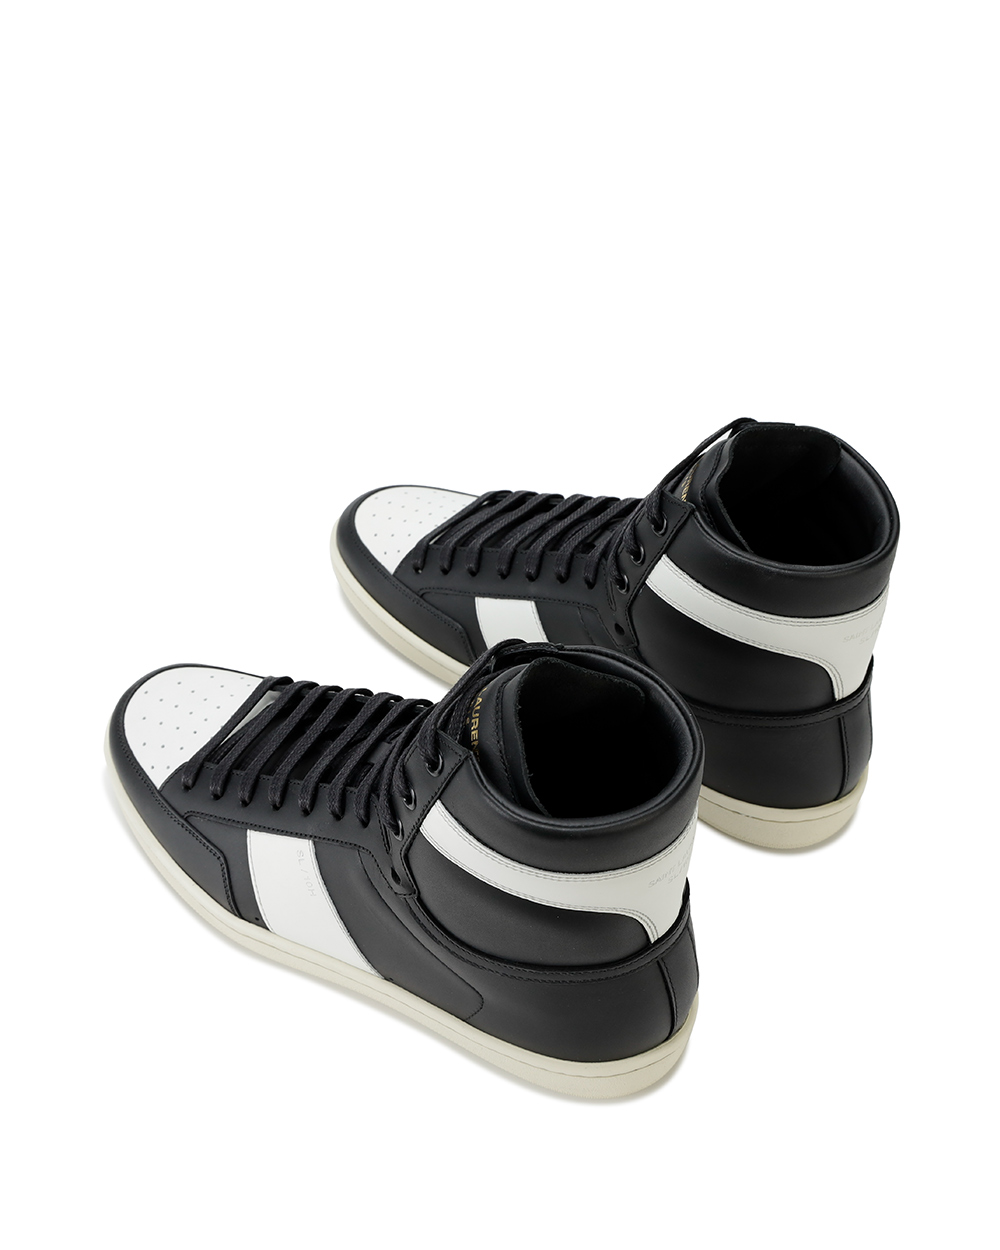 Signature Court Classic SL/10H High Top Sneakers 2